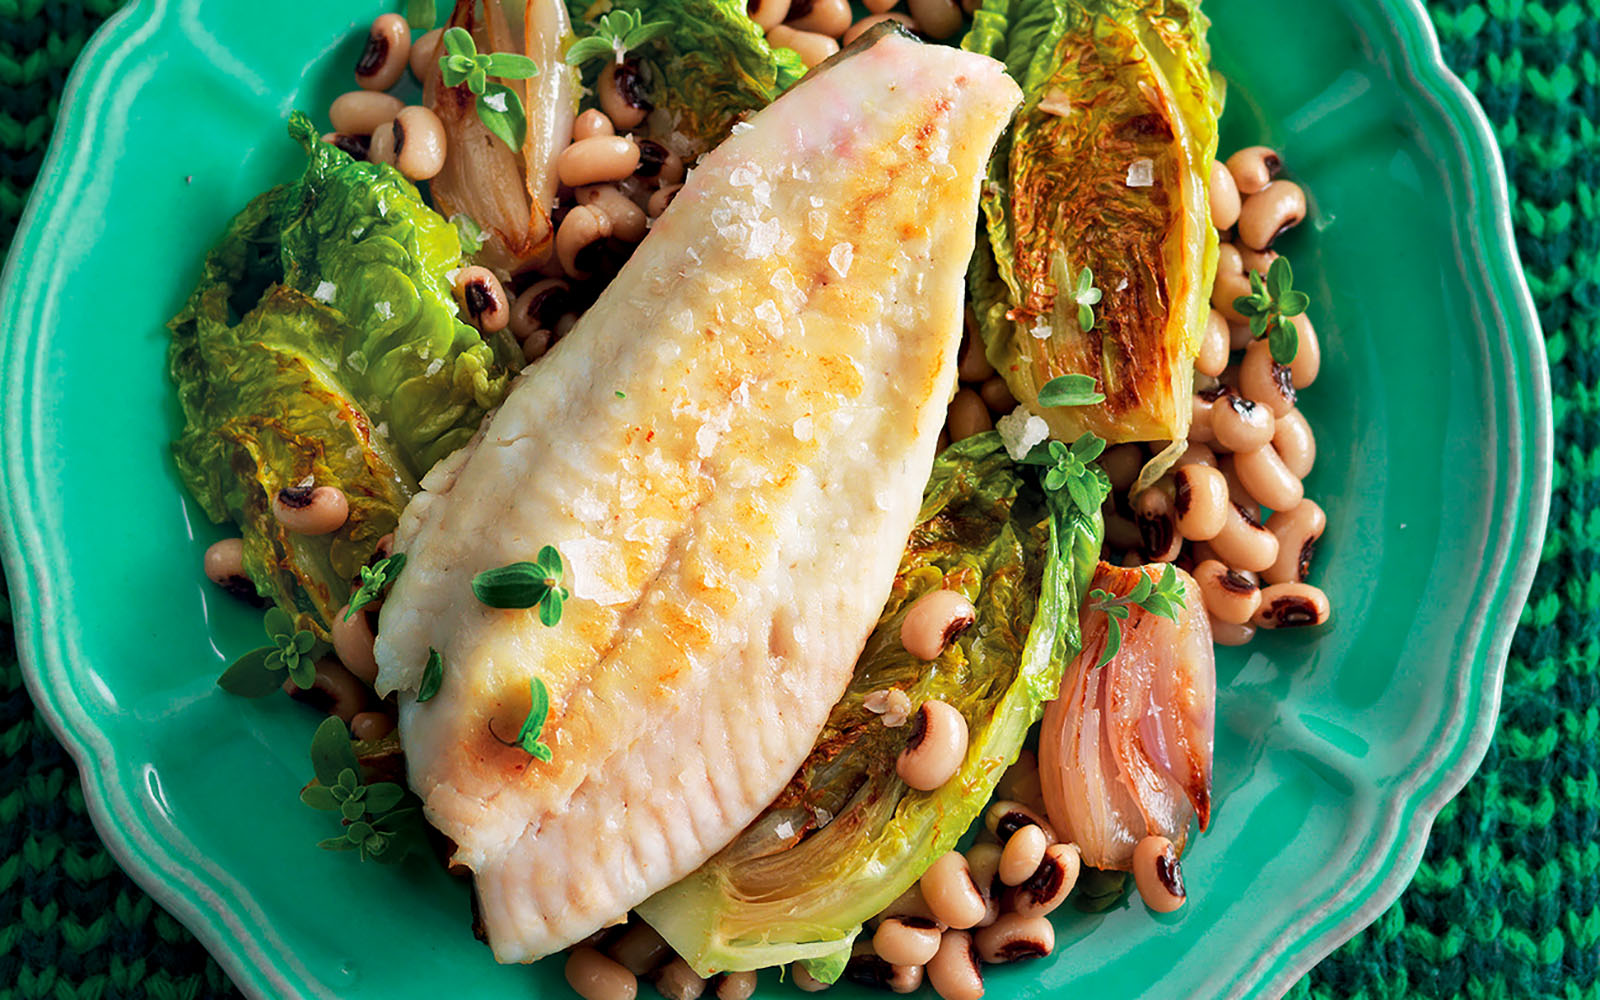 Turbot recipe, beans and lettuce